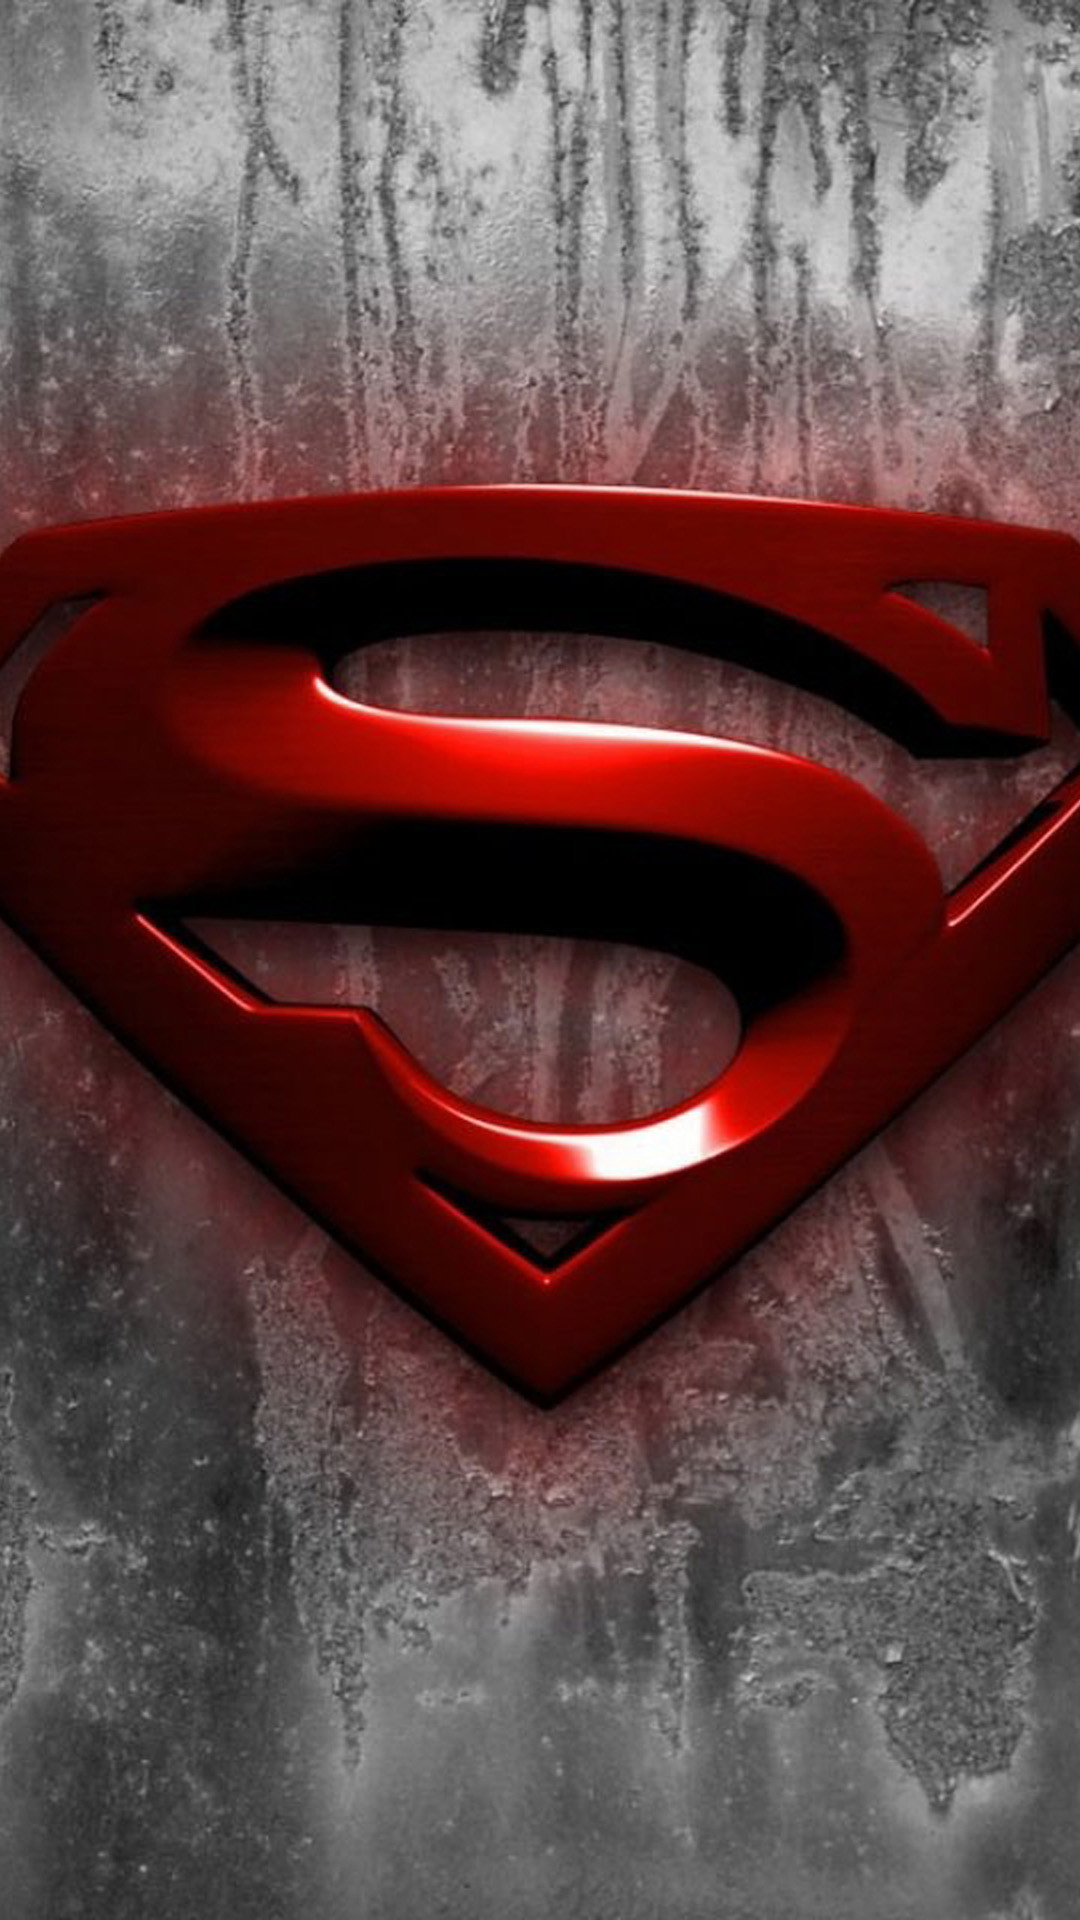 Superman logo iphone wallpaper hd 65 images 1920x1080 superman logo man of steel wallpaper free desktop voltagebd Gallery